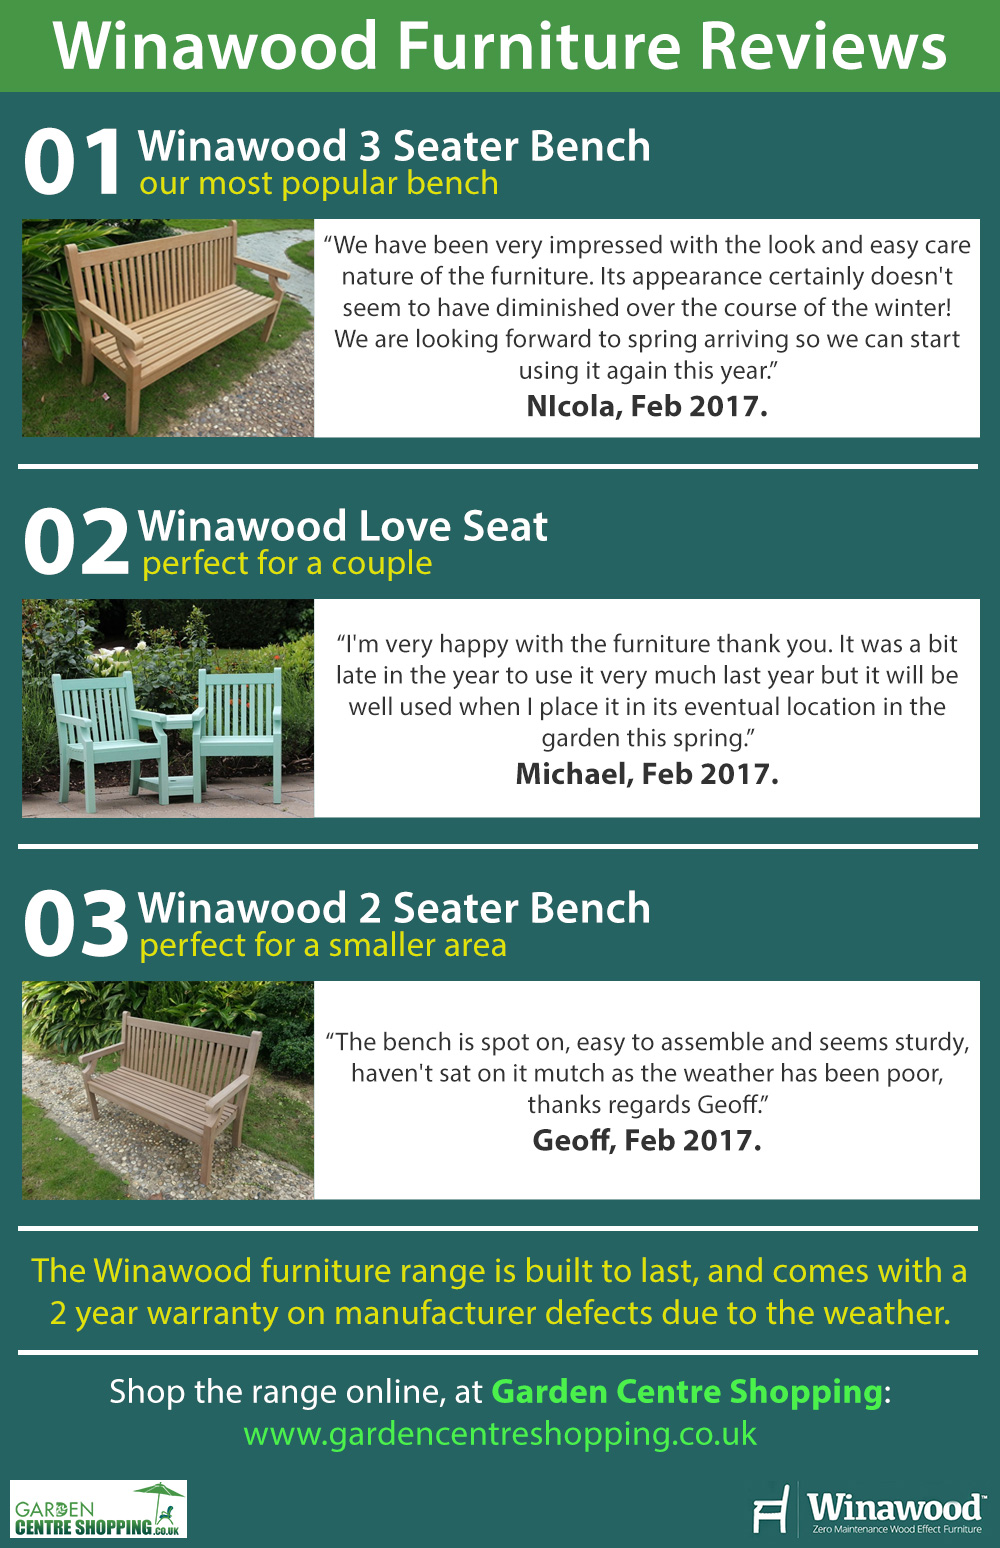 Winawood furniture reviews from Garden Centre Shopping